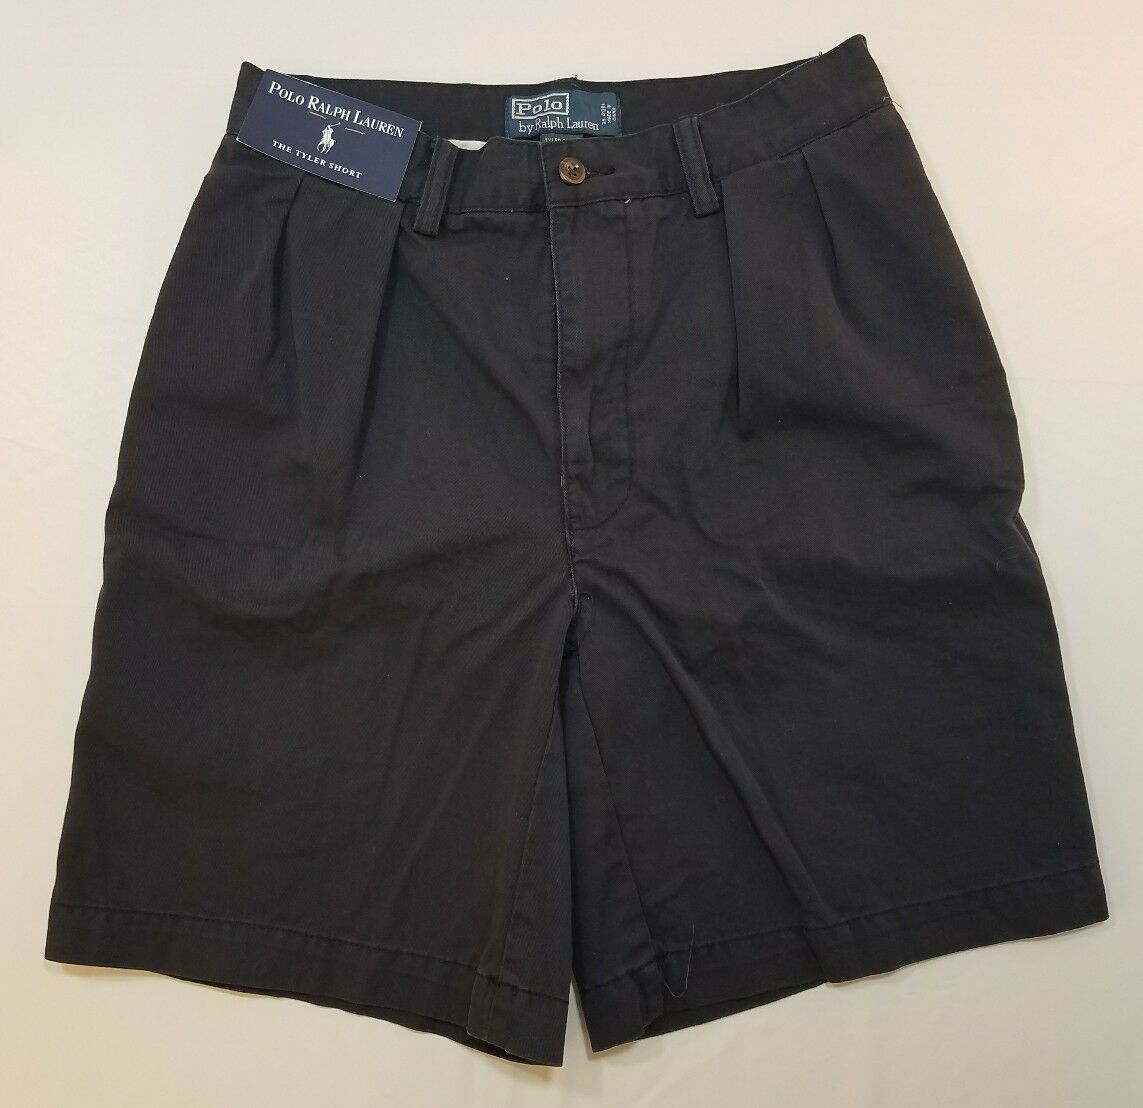 Polo Ralph Lauren NAVY blueE TYLER SHORTS PLEATED FRONT NWT